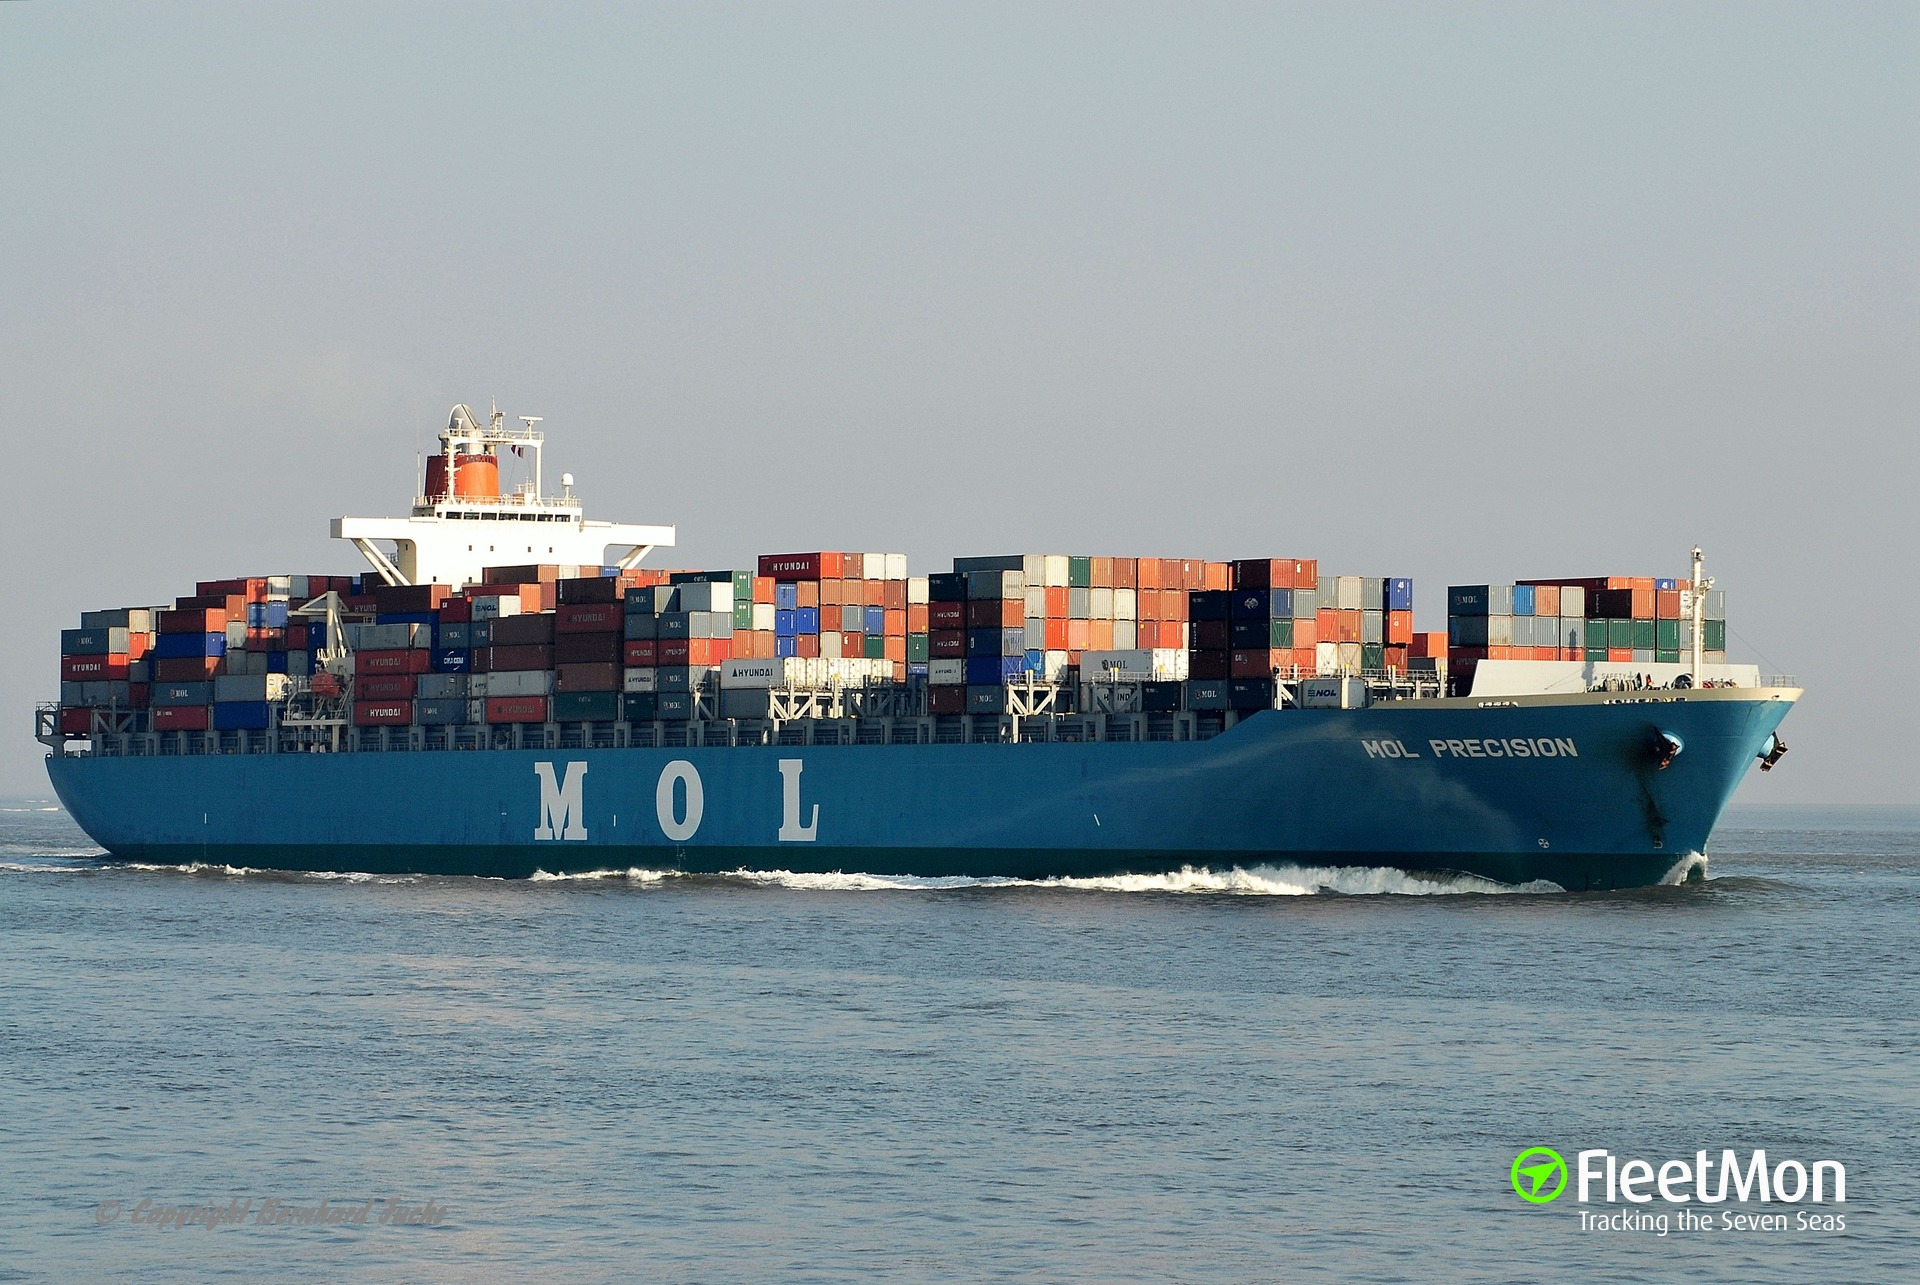 Container ship MOL Precision struck the berth in Vancouver